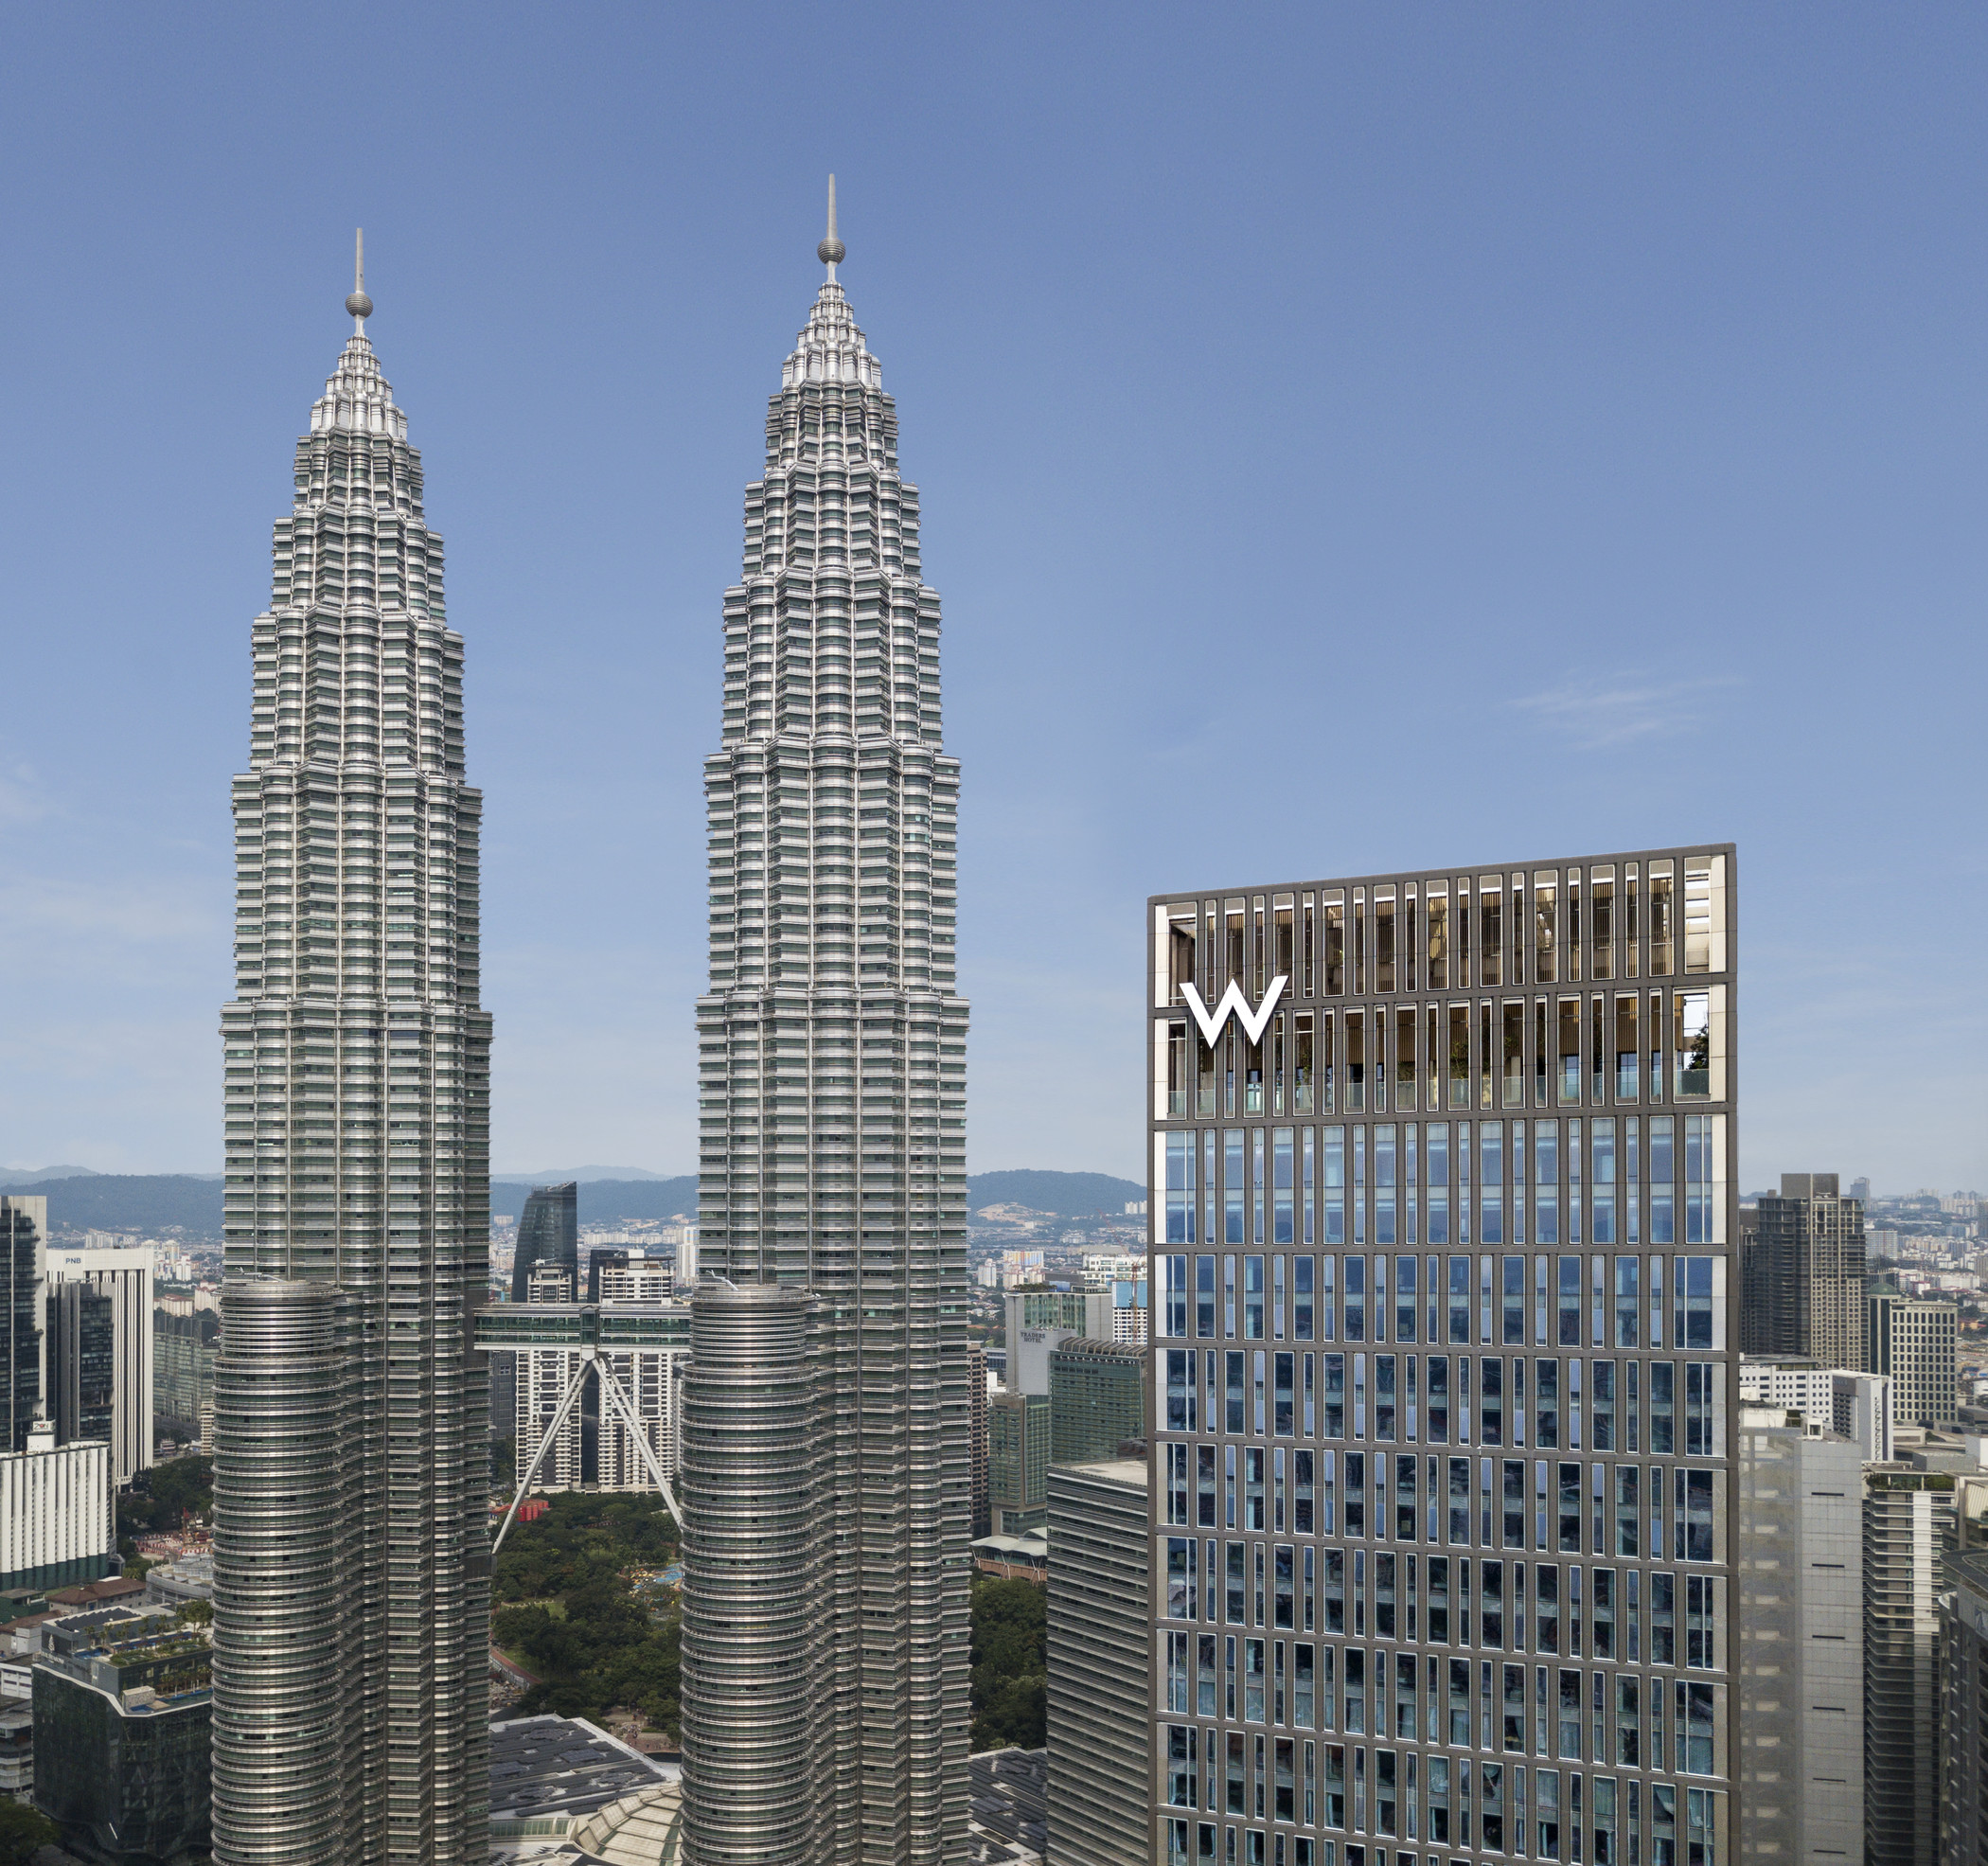 The new hotel is next to the city's iconic Petronas Towers.